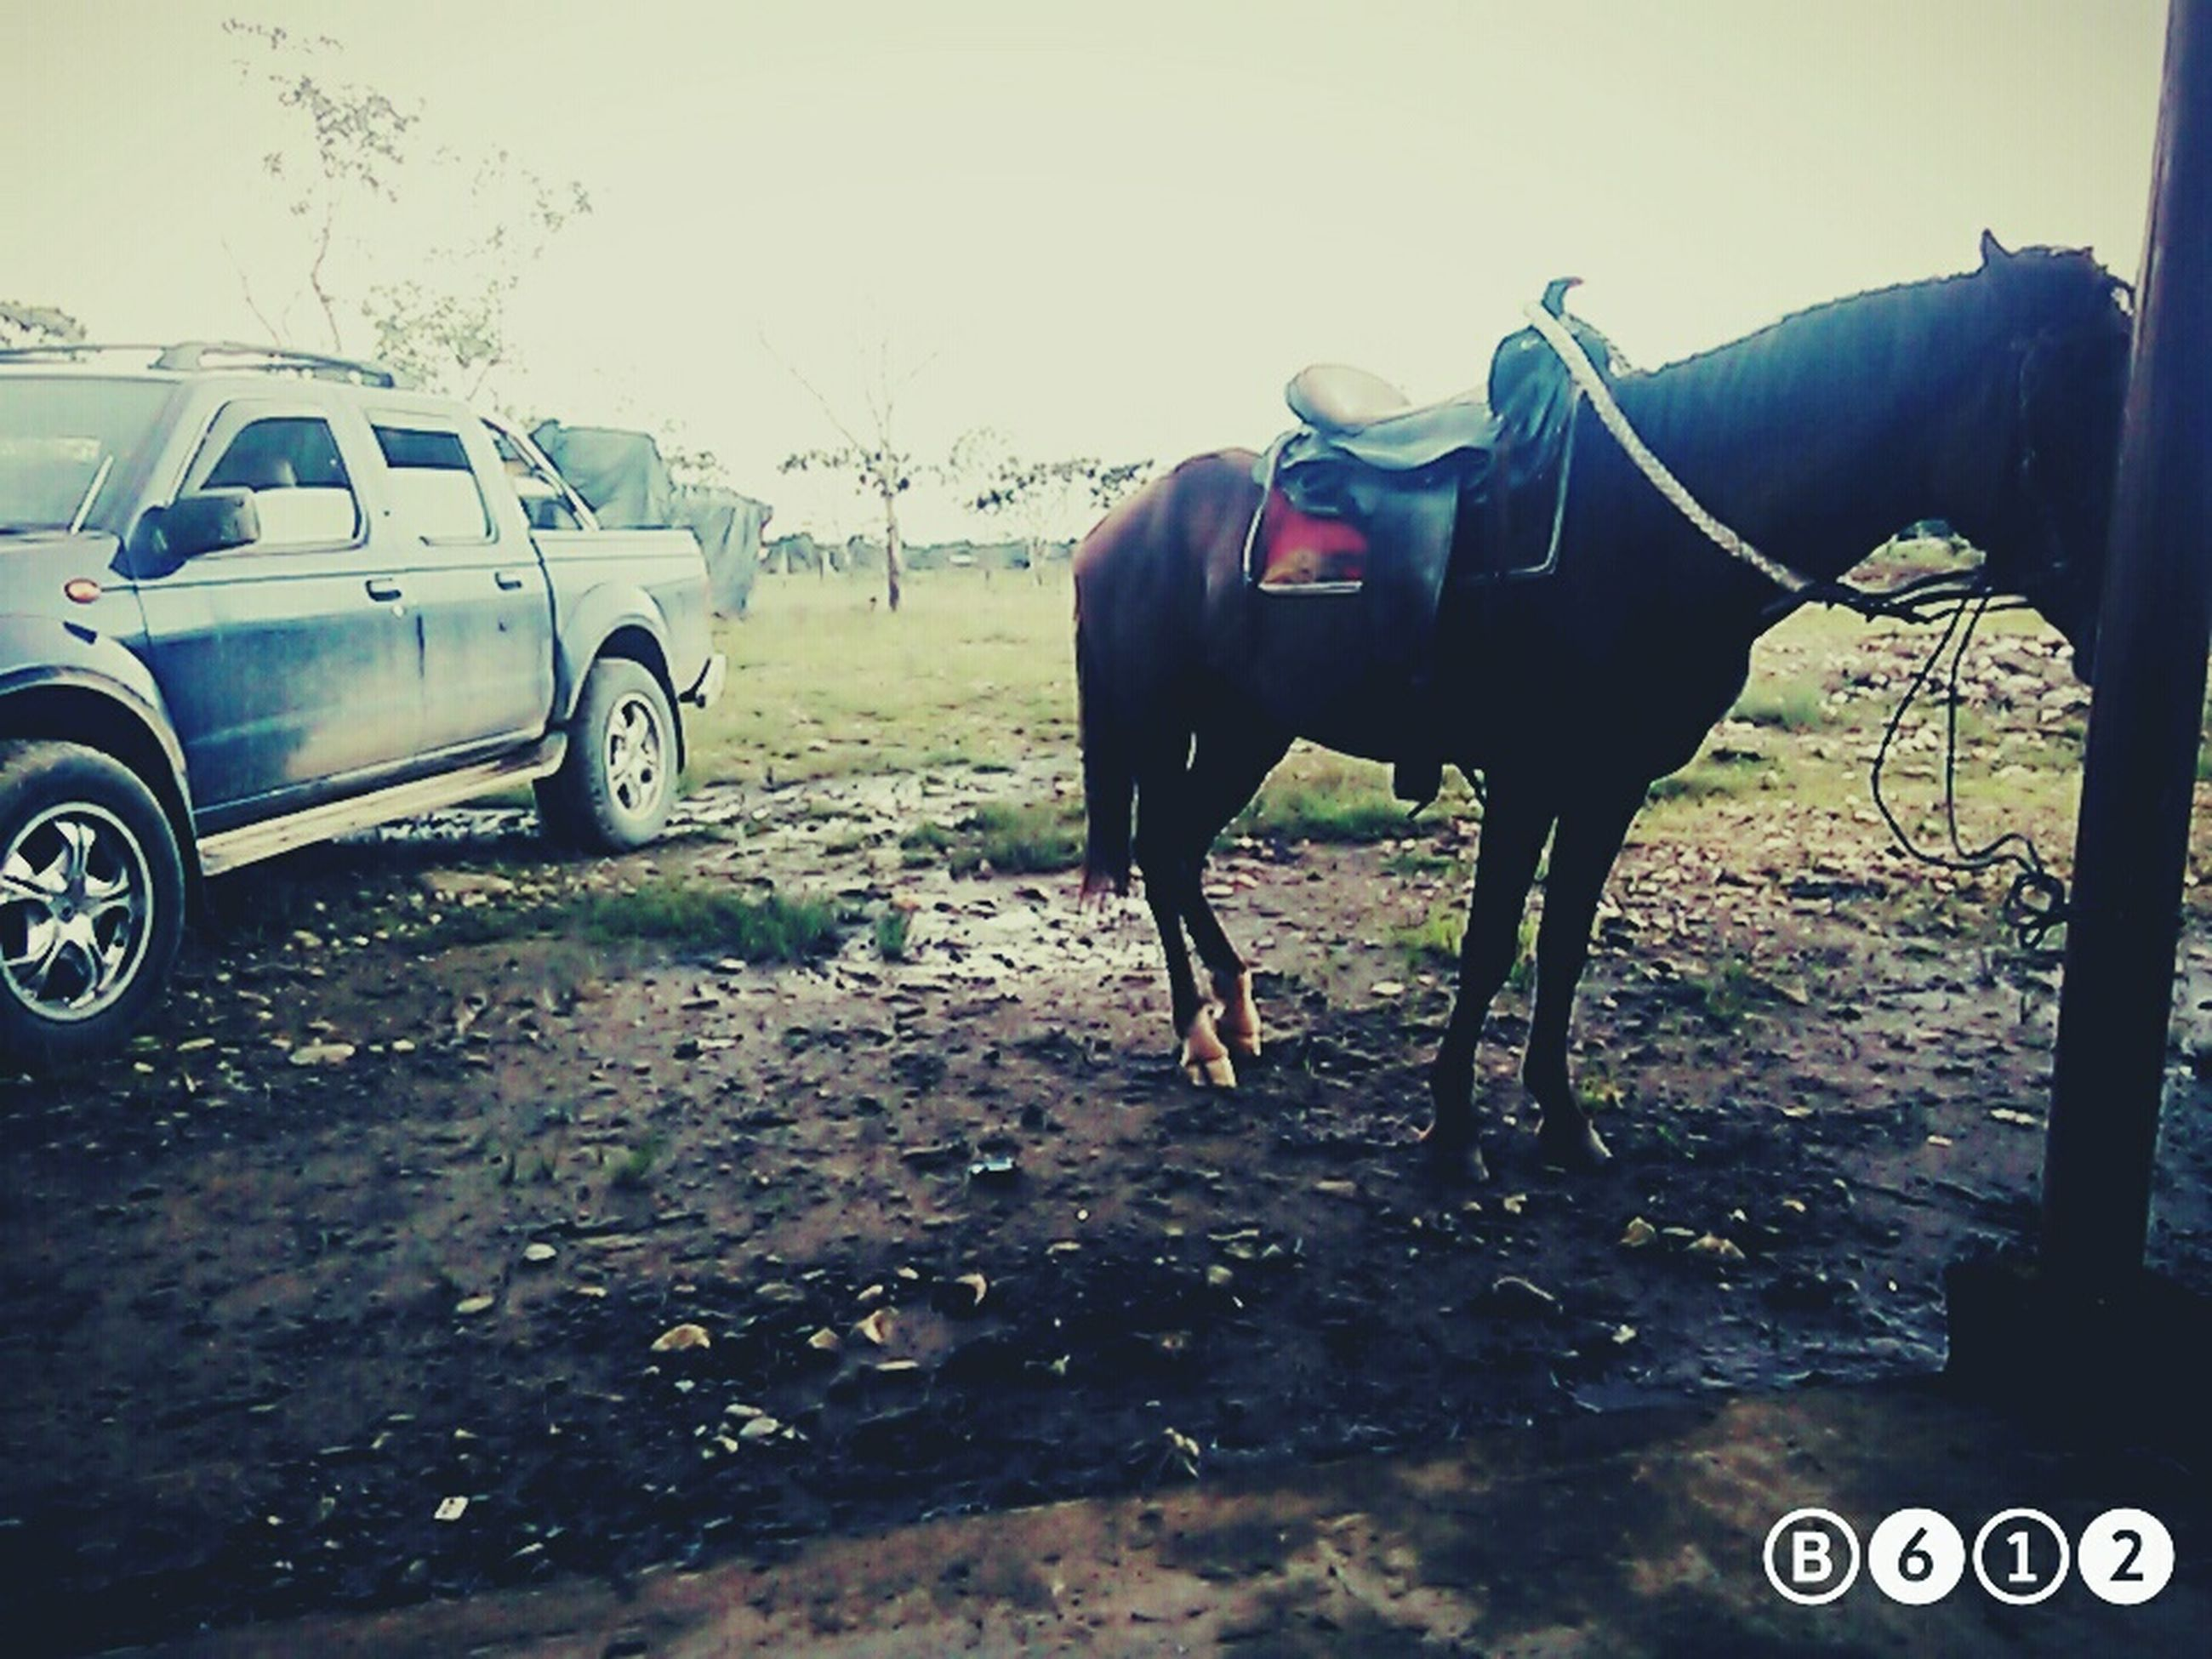 land vehicle, transportation, animal themes, mode of transport, domestic animals, car, horse, mammal, one animal, field, sky, livestock, day, outdoors, no people, road, working animal, street, side view, landscape